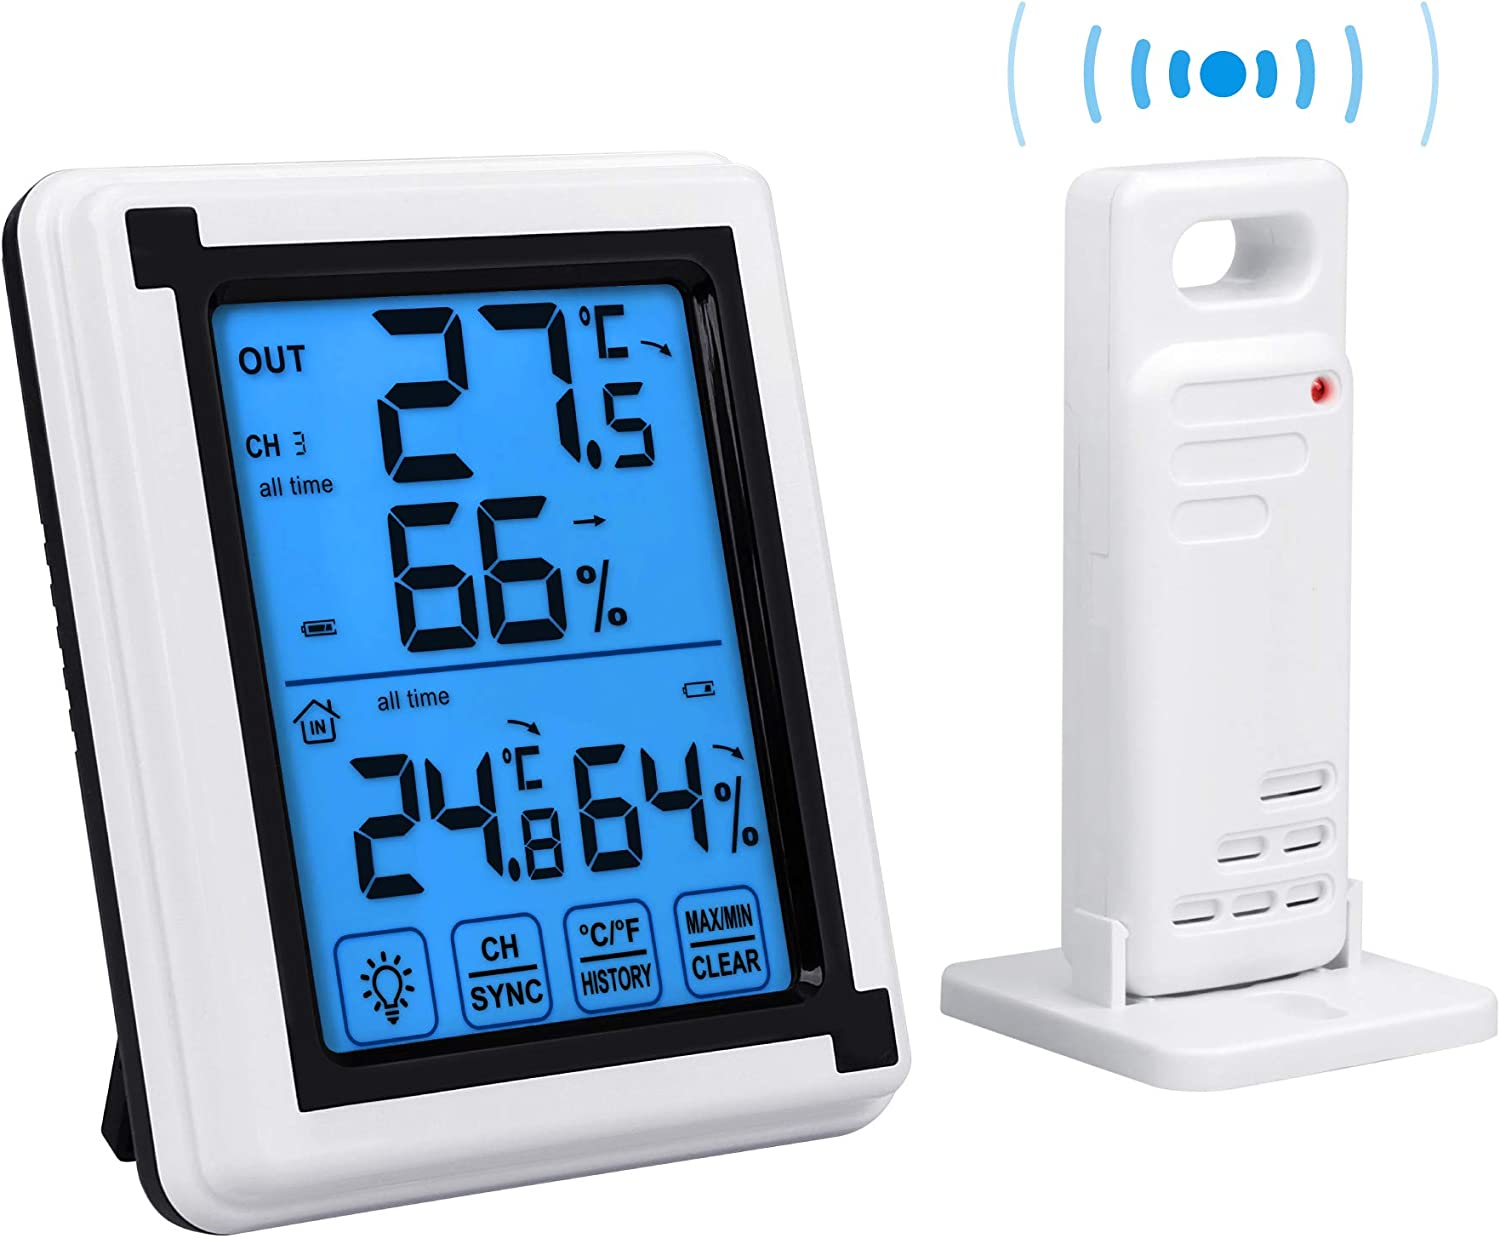 Auing Indoor Outdoor Thermometer Wireless Temperature and Humidity Monitor with Touchscreen and Waterproof Outdoor Temperature Monitor, 200ft/60m Range